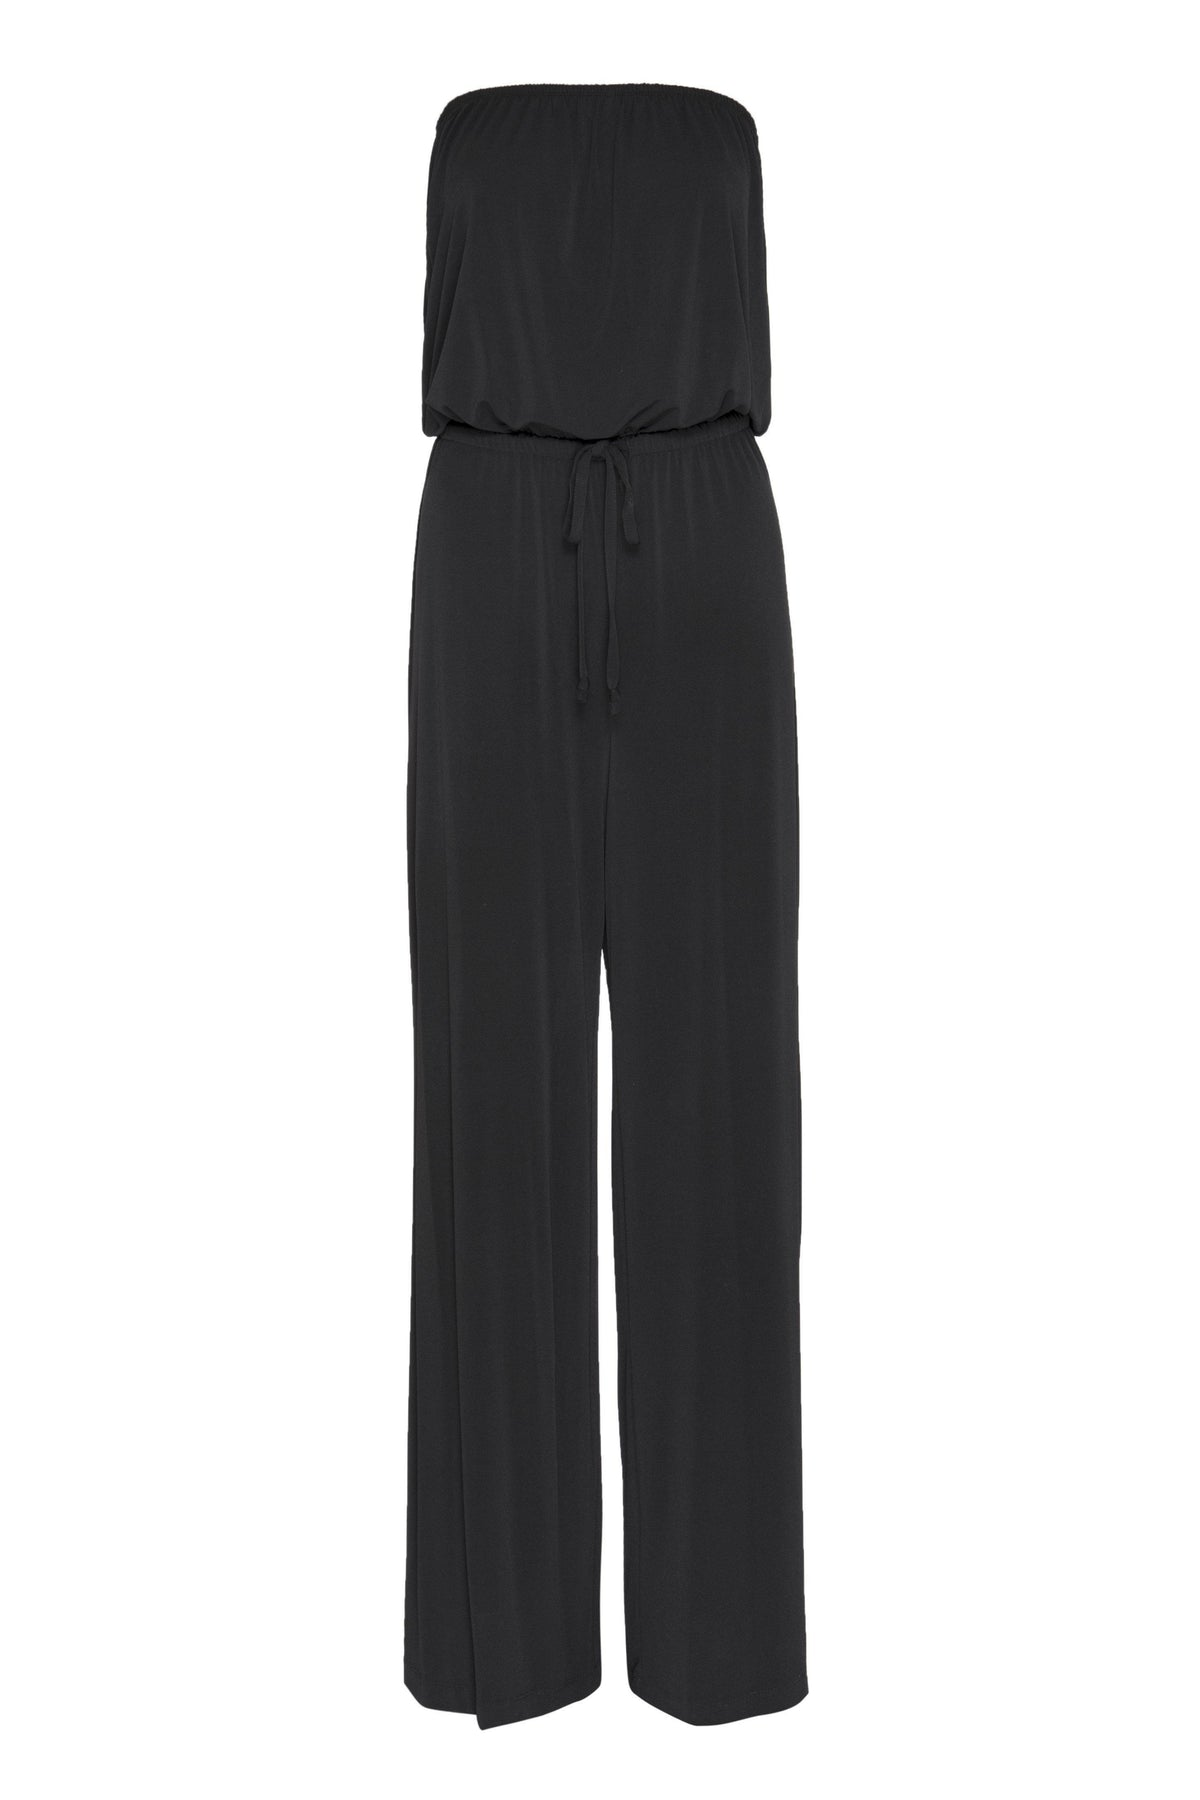 - Melissa Black Strapless Jumpsuit from Connected Apparel on ghost mannequin form